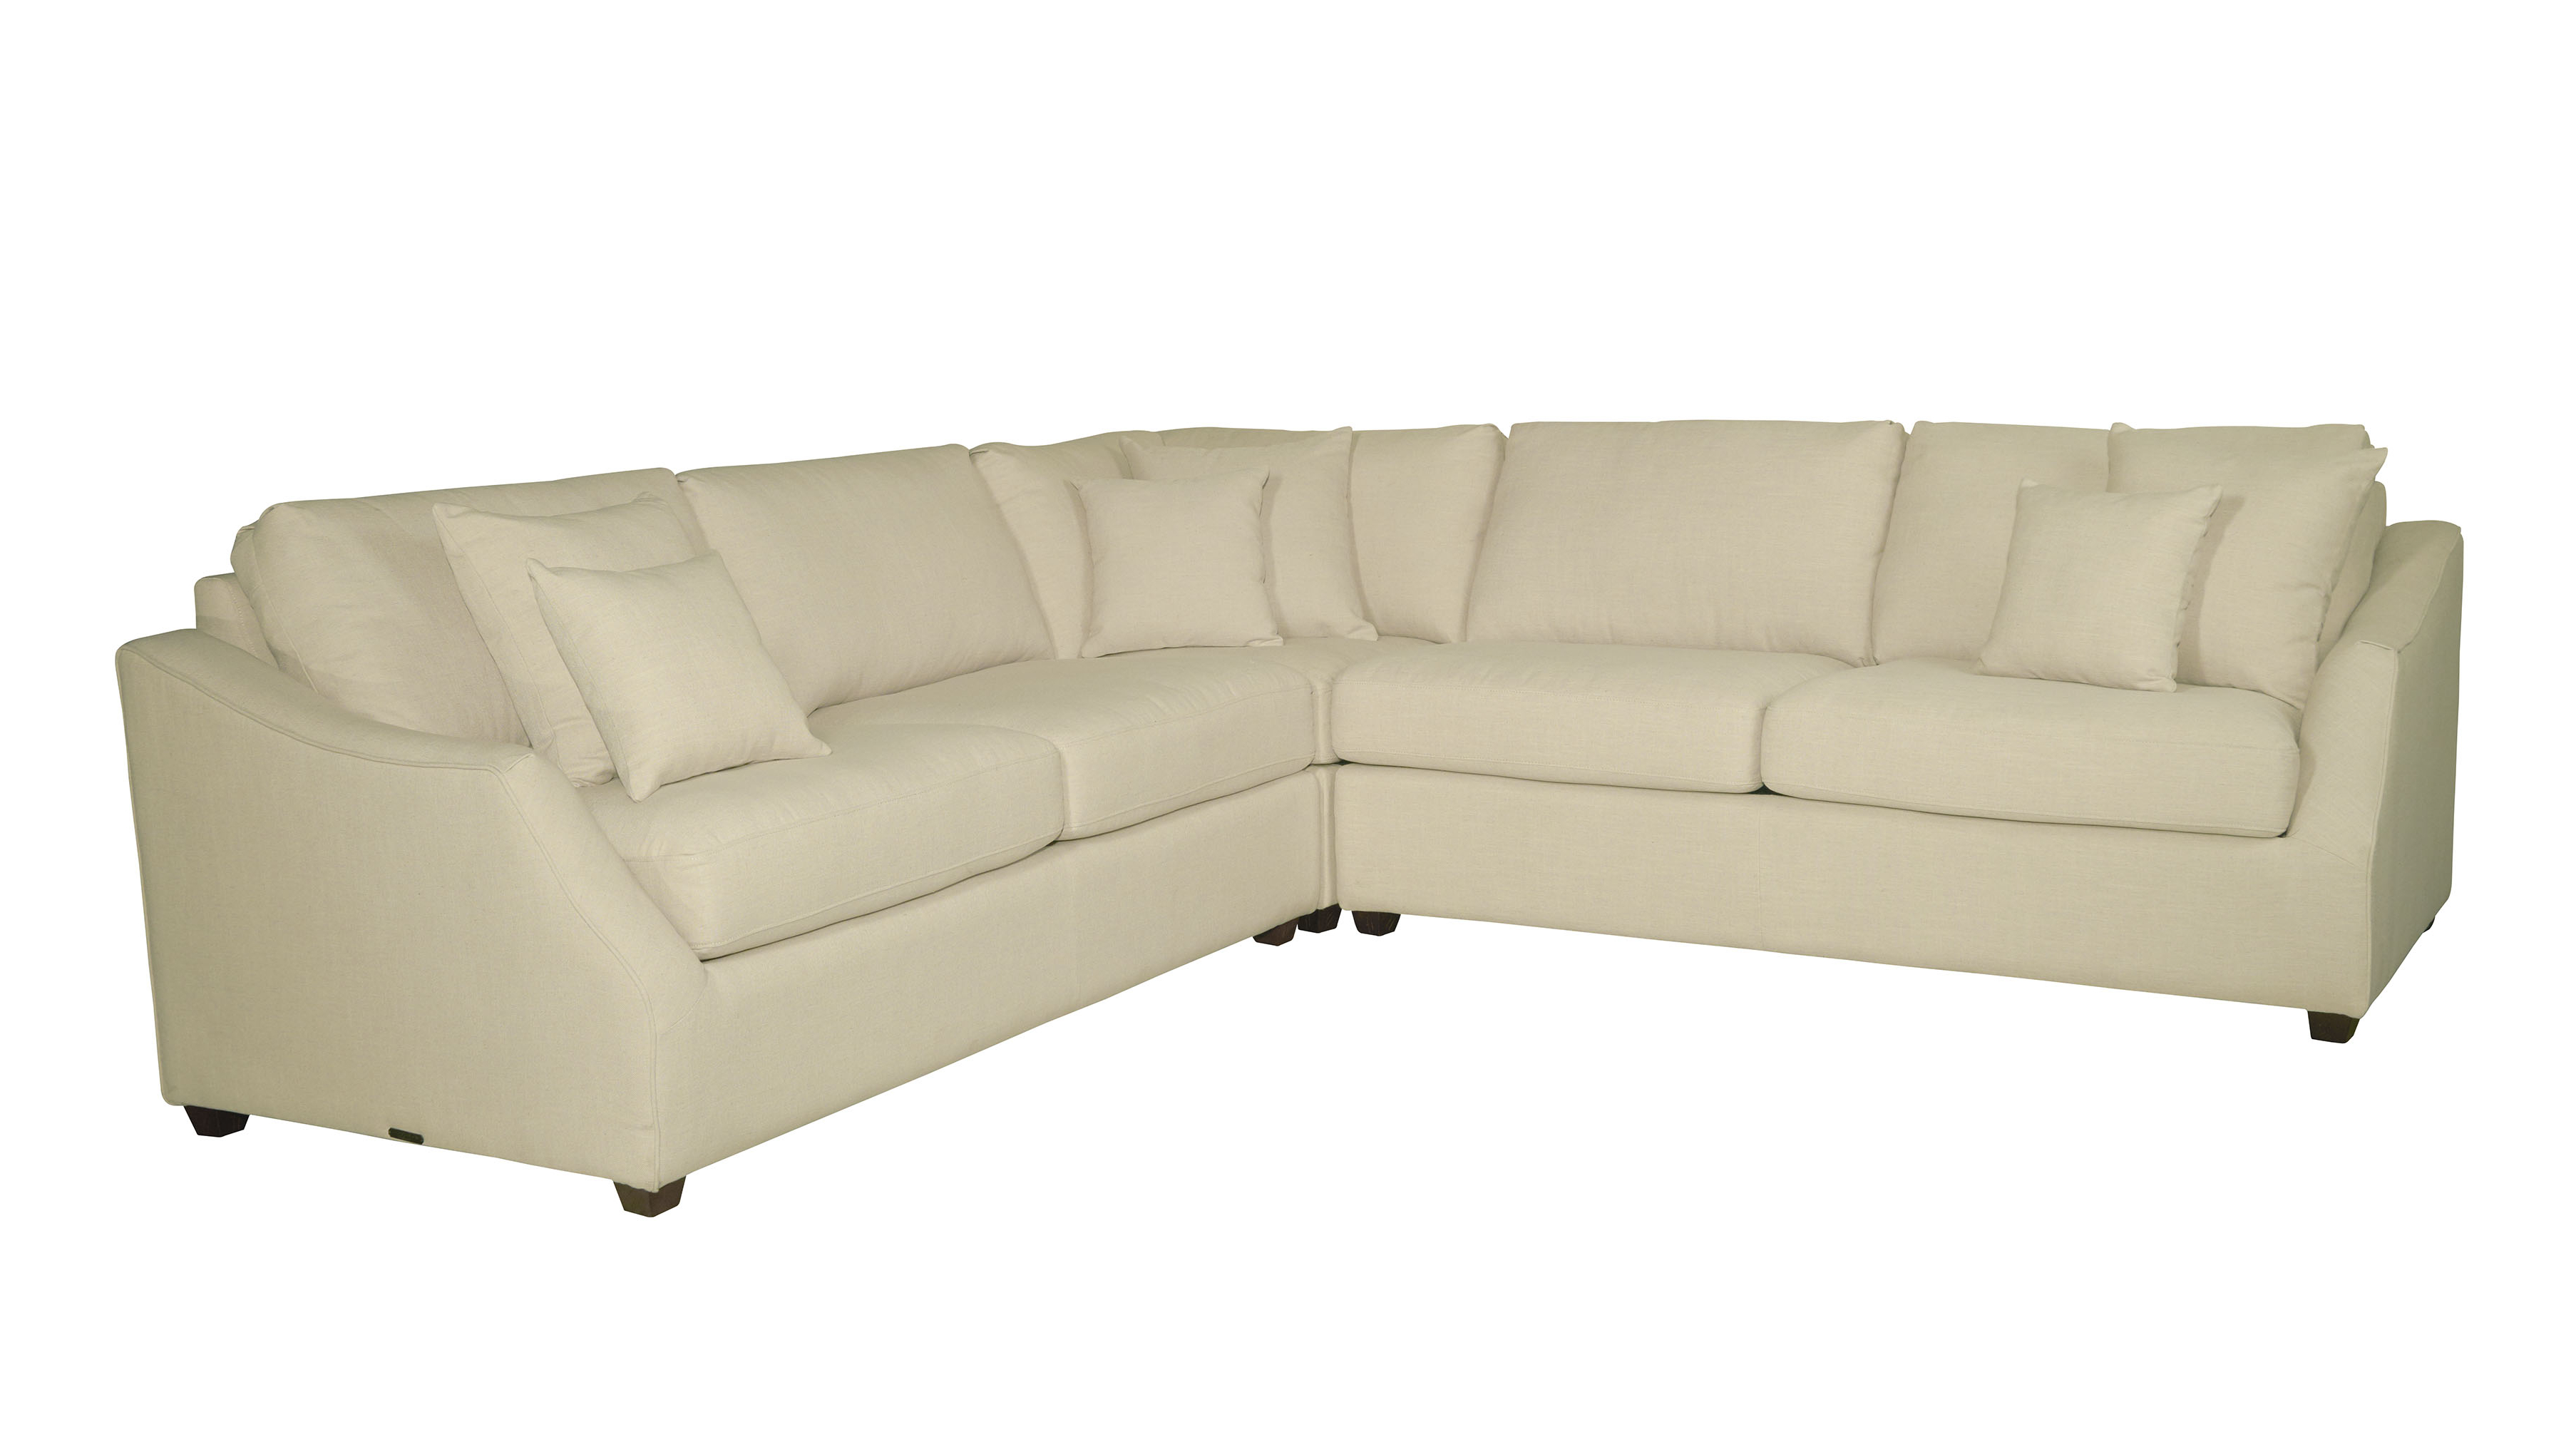 Fashionable Magnolia Home Homestead 3 Piece Sectionals By Joanna Gaines With Homestead Sectional – Magnolia Home (View 2 of 20)